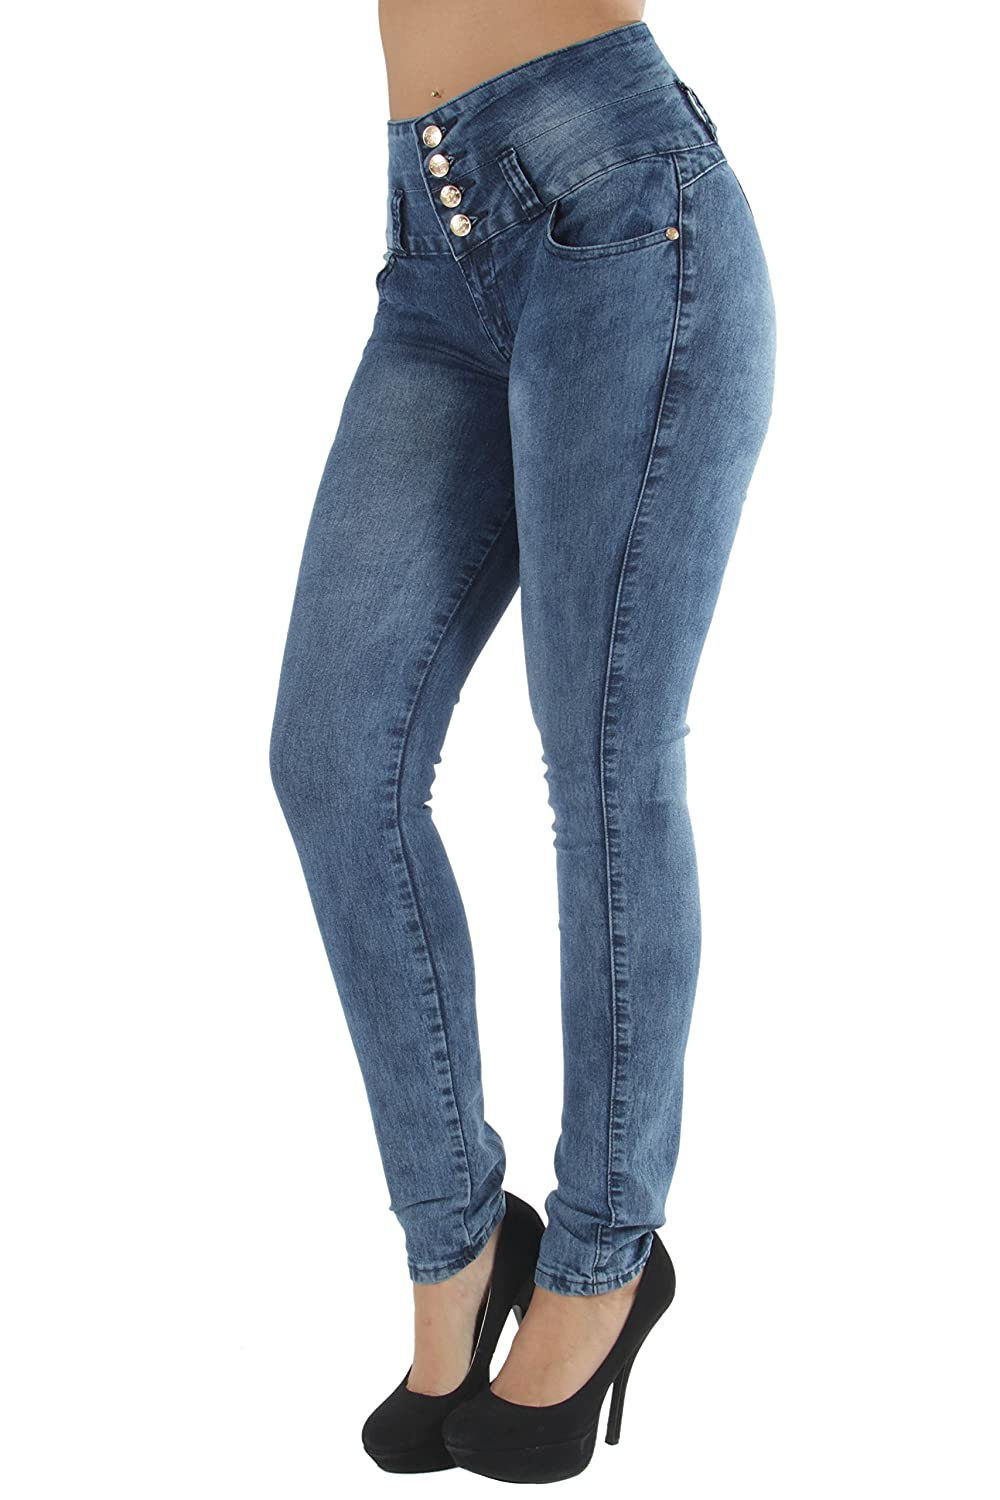 a49d7bb5d15d8 Top 10 wholesale Acid Wash Jeans For Plus Size - Chinabrands.com